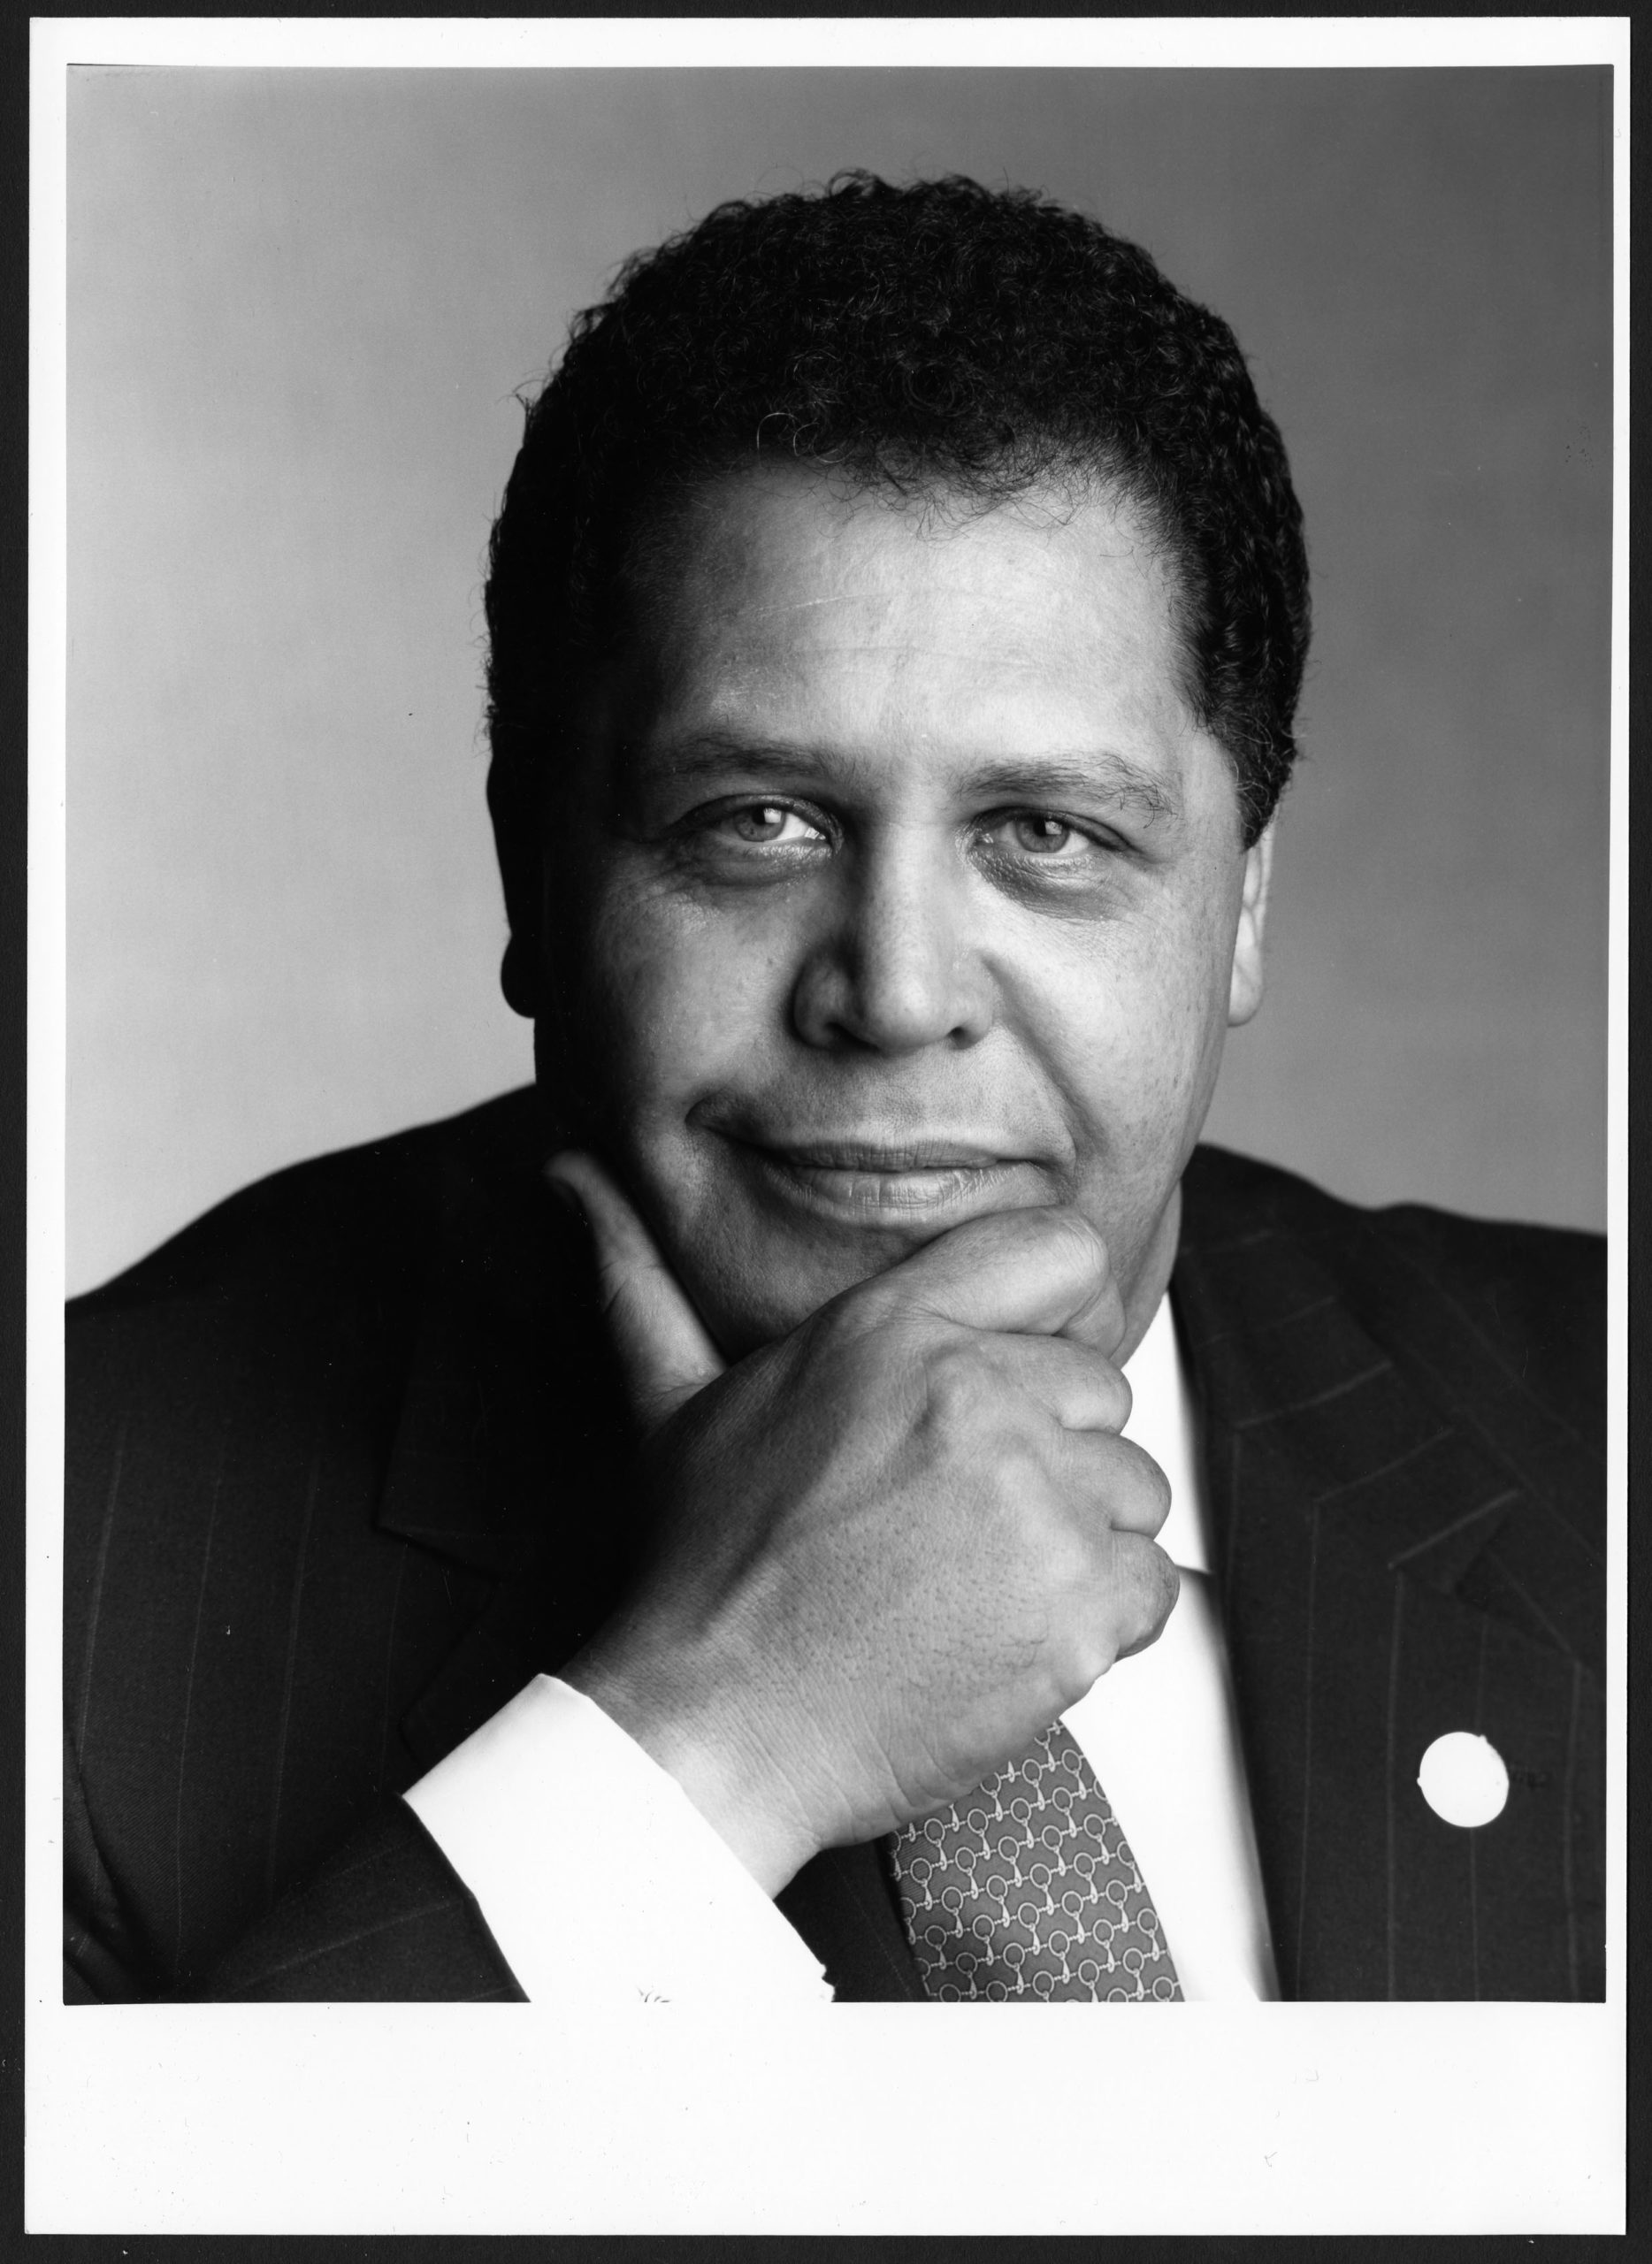 Portrait Jackson, undated, Maynard Jackson mayoral administrative records: Series F: Photographs